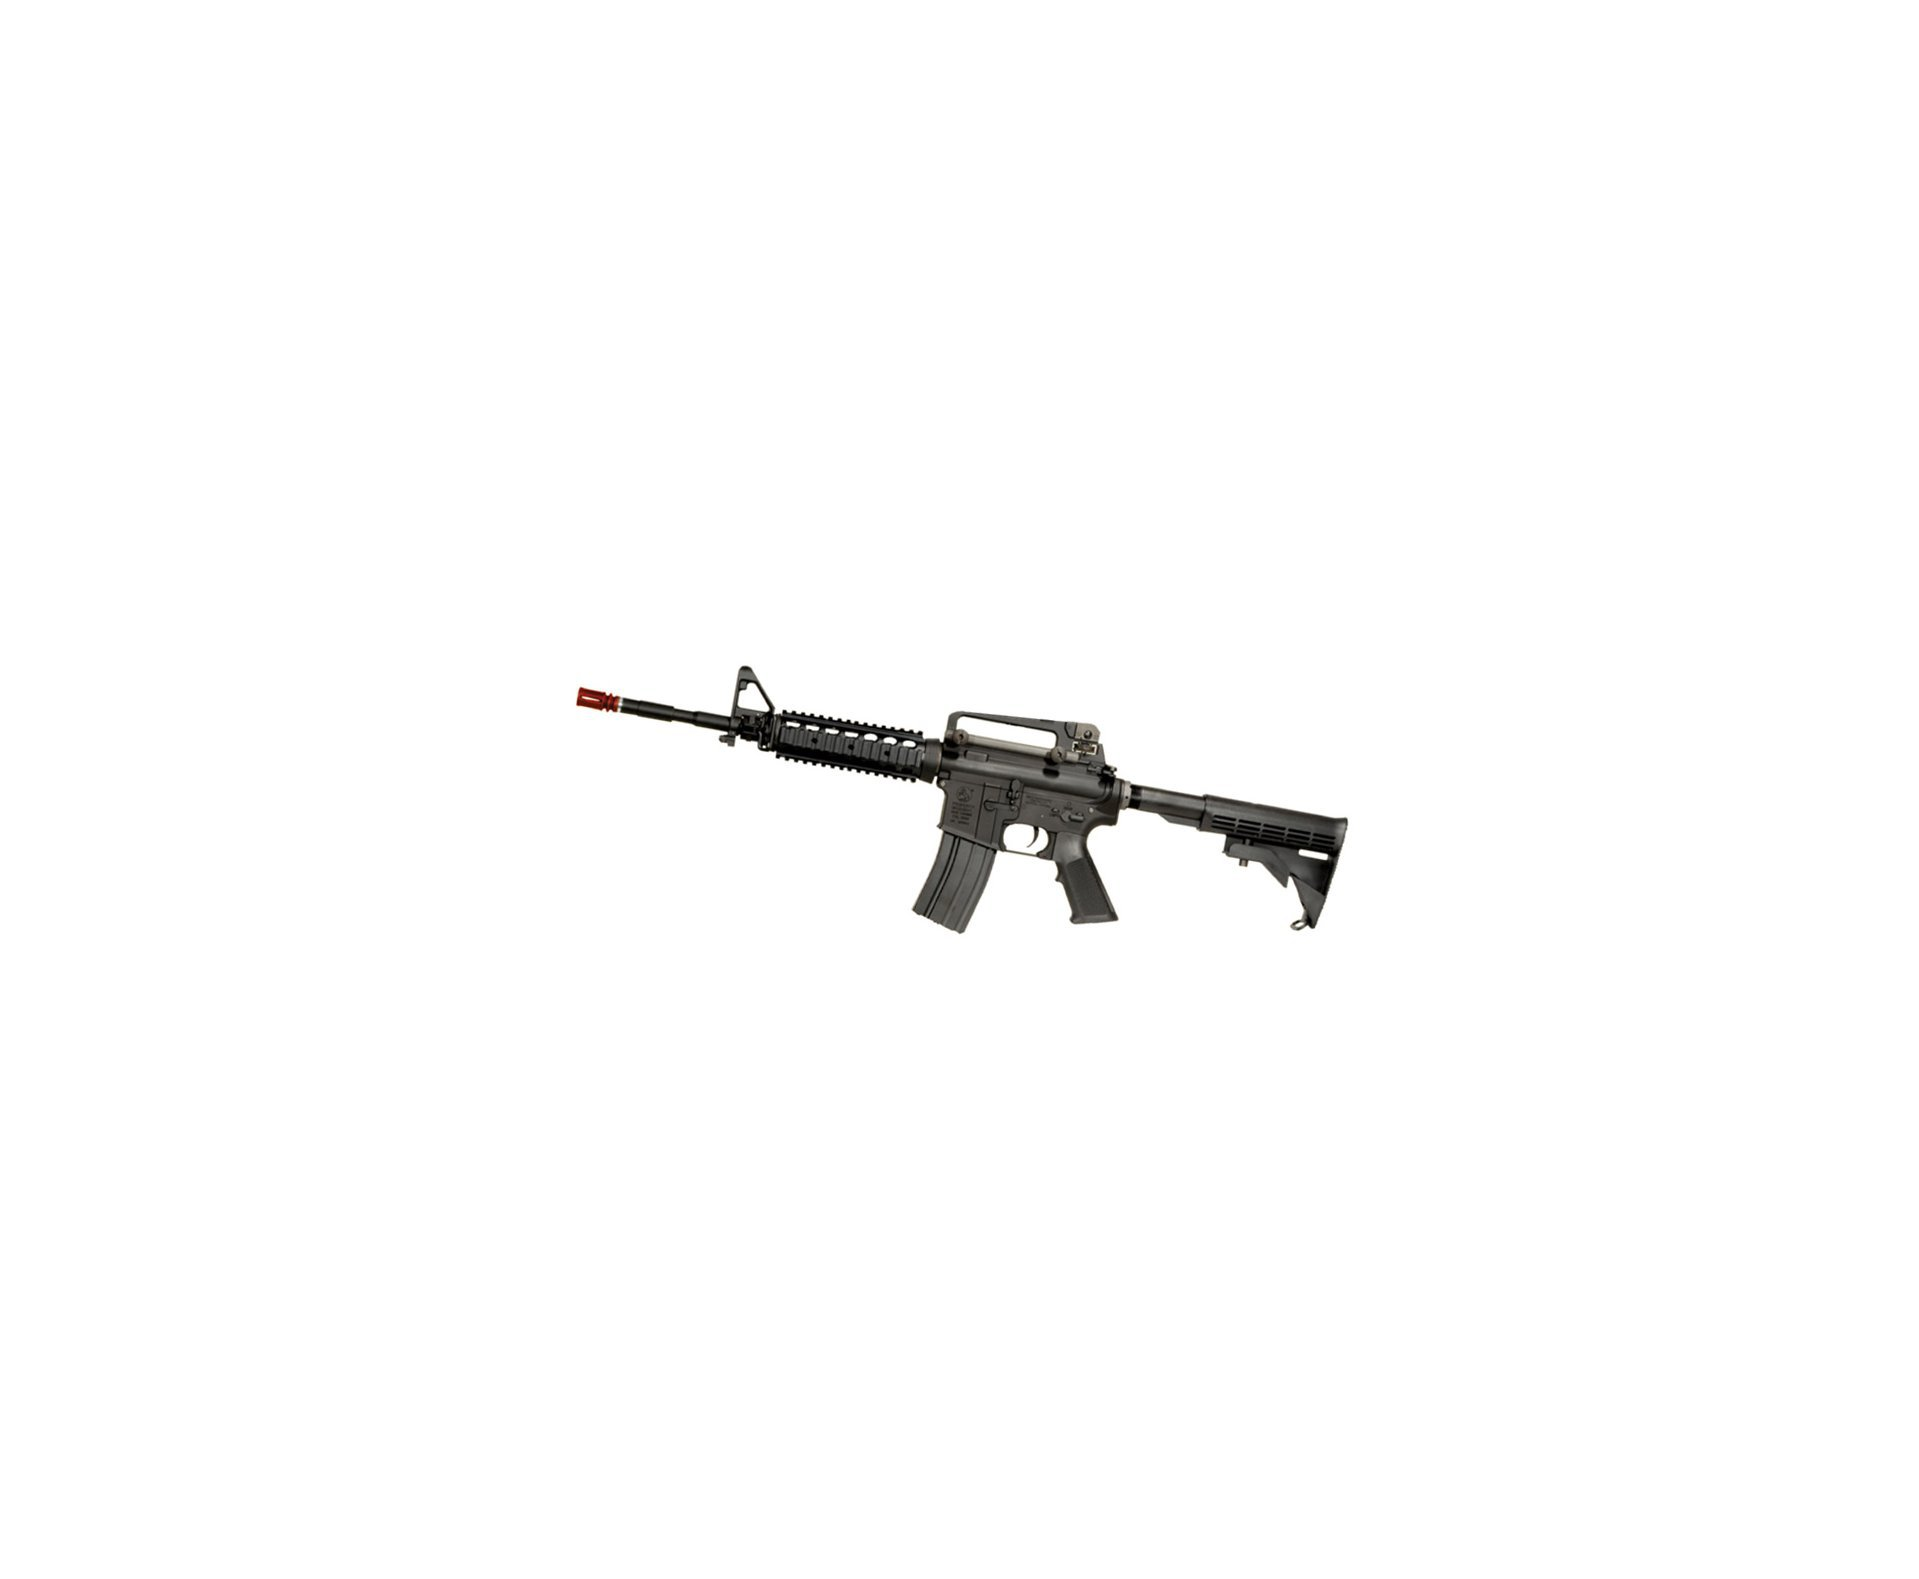 Rifle De Airsoft Colt M4a1ris Cal 6,0 Mm - King Arms + Farda Marpat Digital Selva Swiss+arms - Tamanho Xg